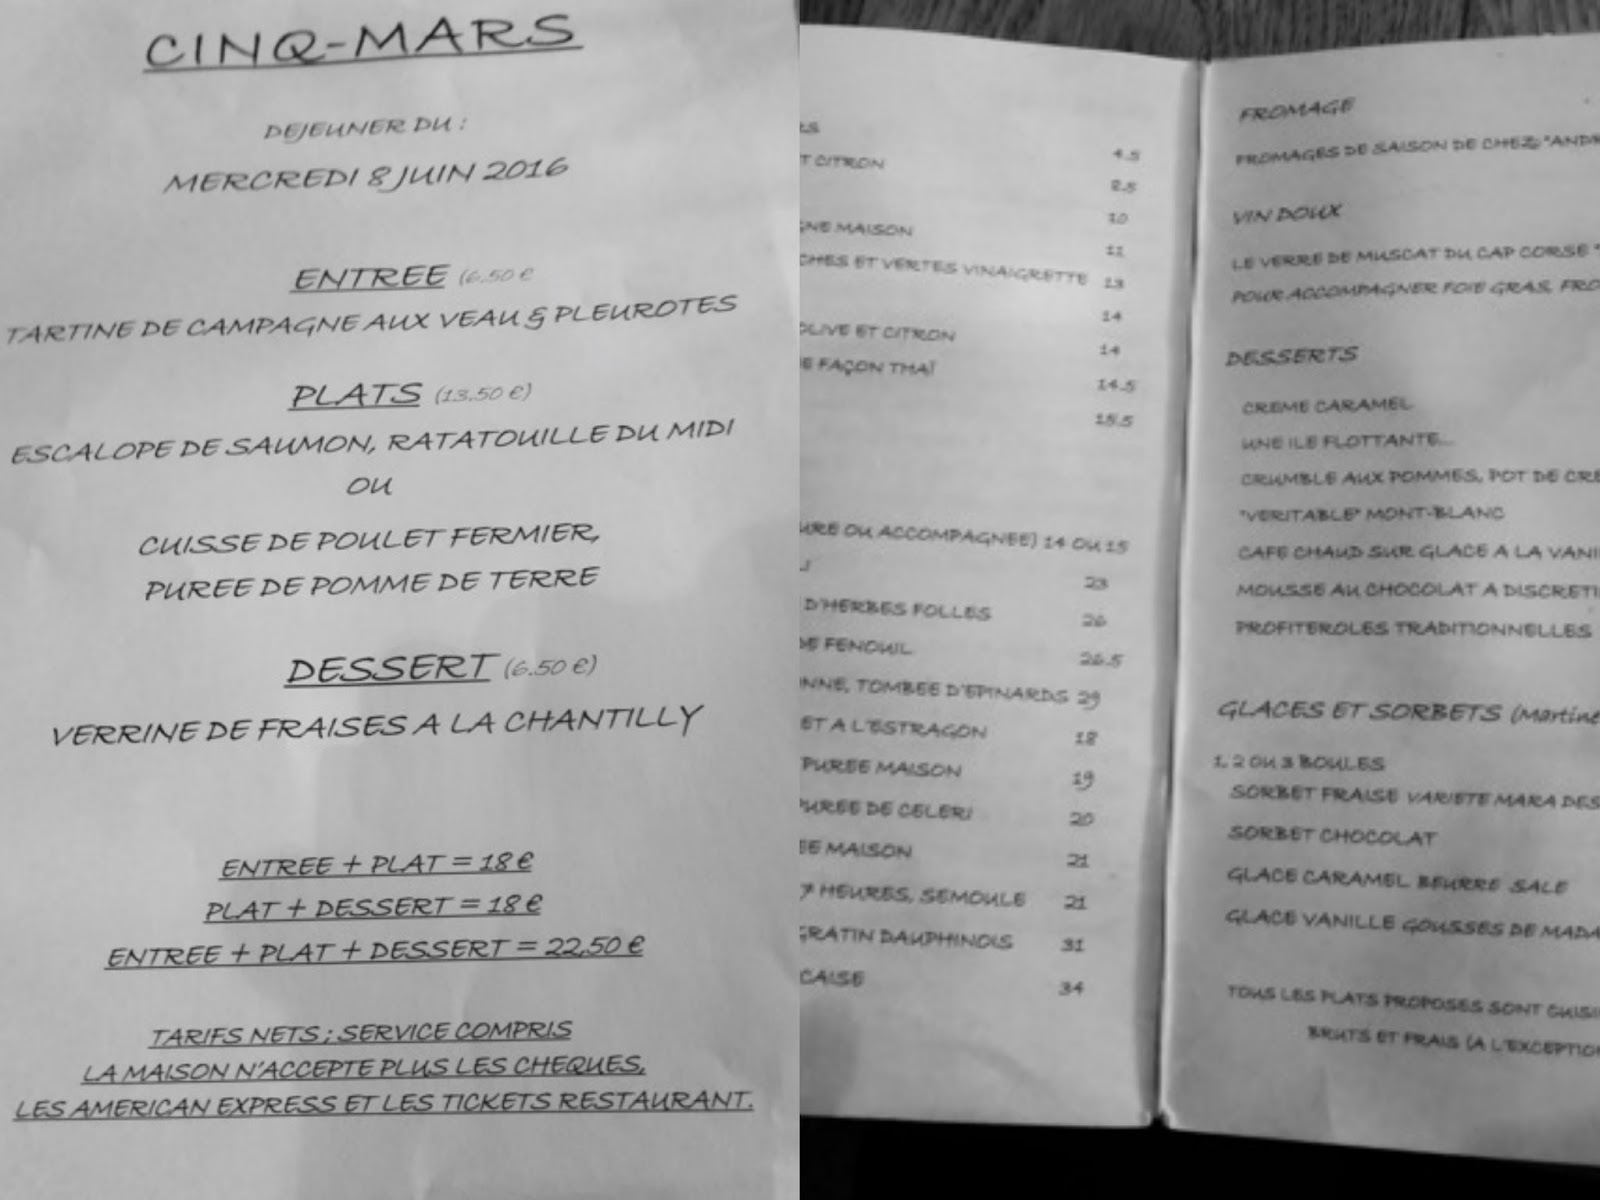 Paris missives cinq mars restaurant restaurant review for H kitchen paris menu